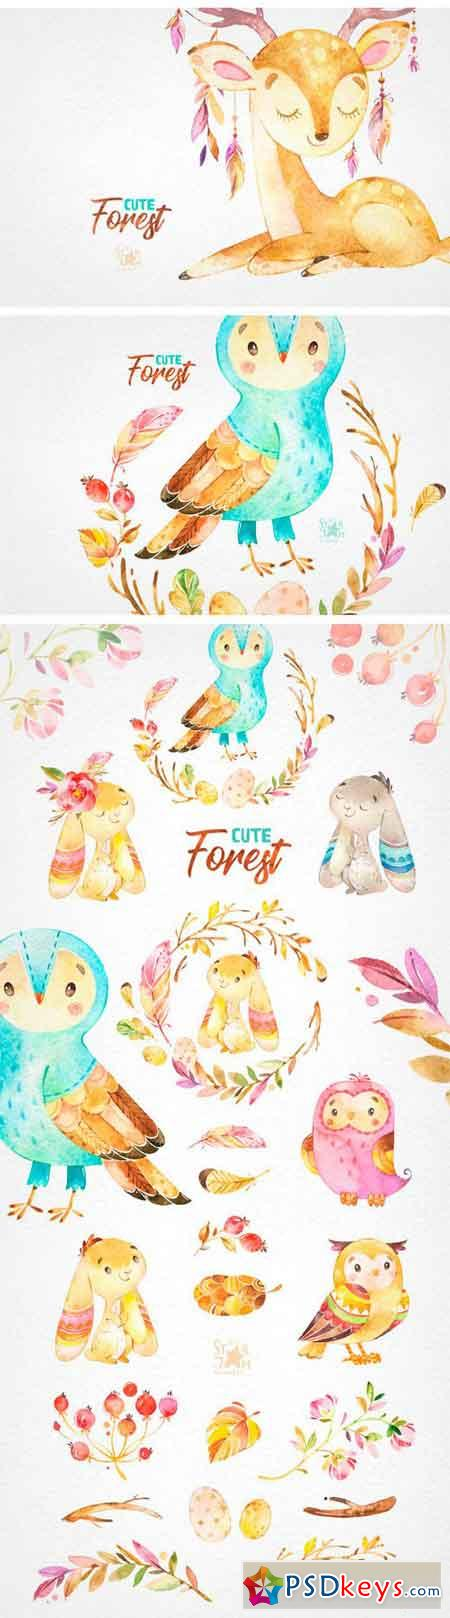 Cute Forest Collection of Animals 2221456